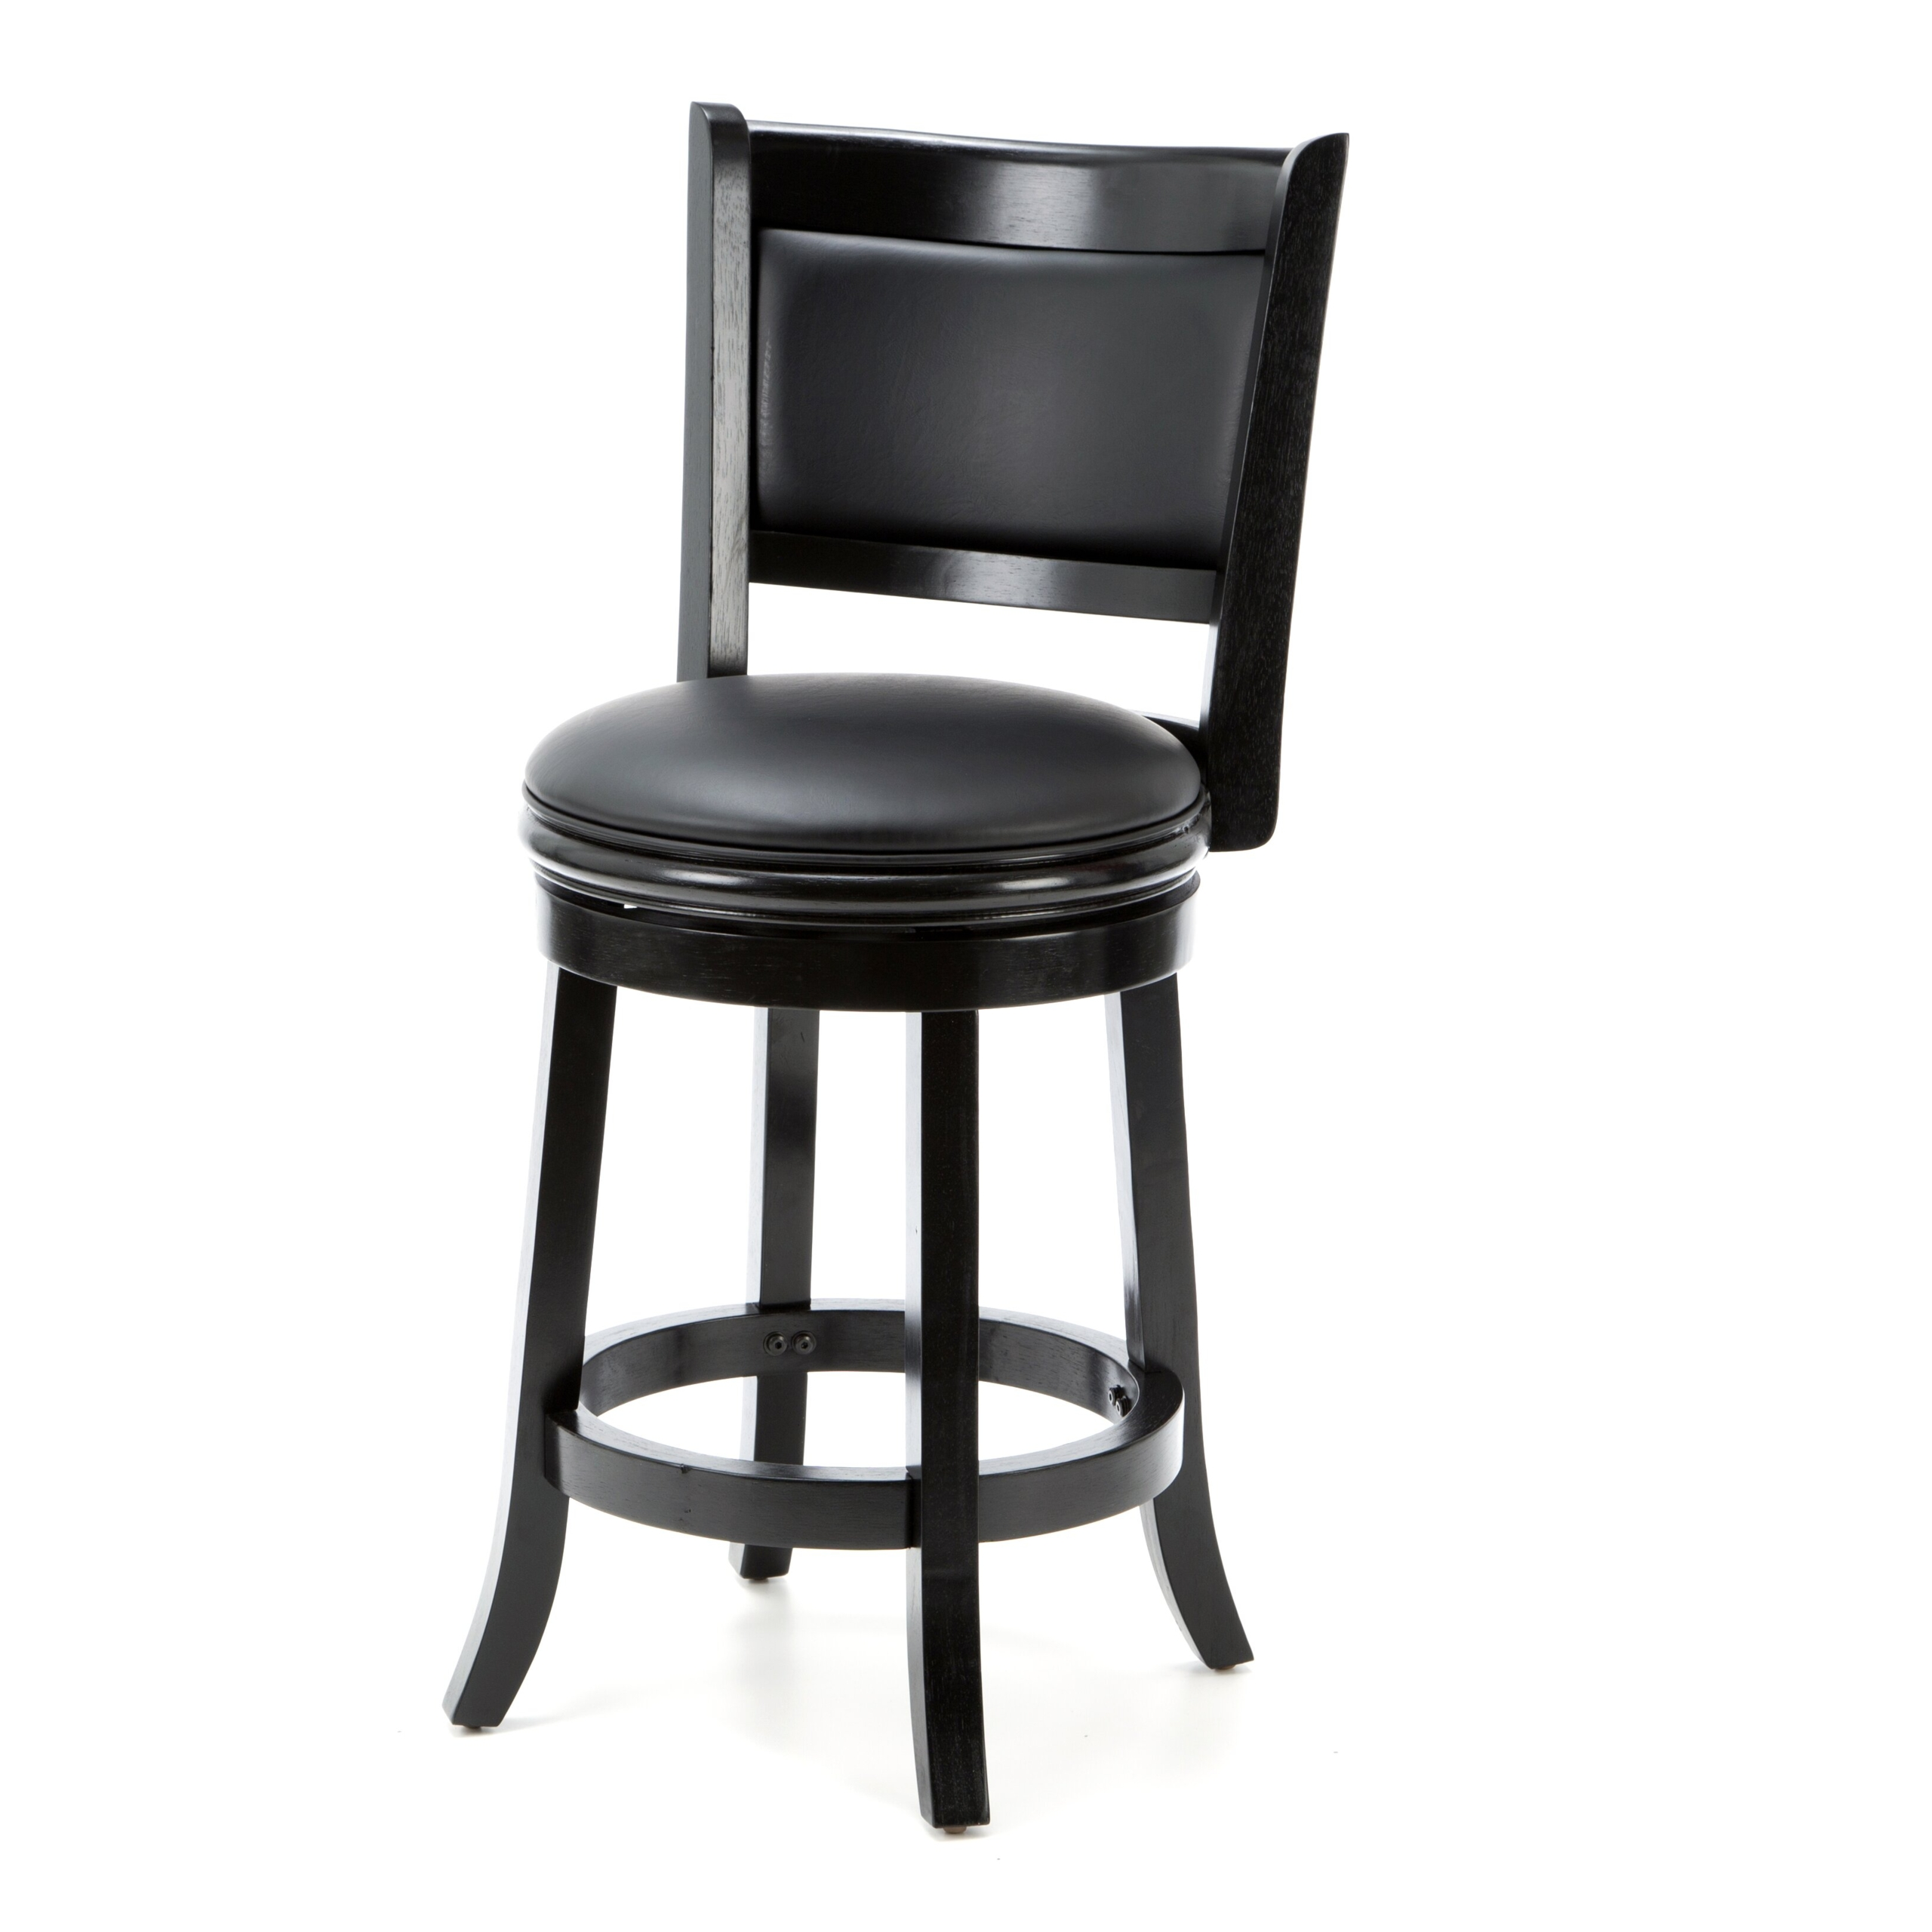 Augusta 360 Degree Swivel Bar Stool with Cushion